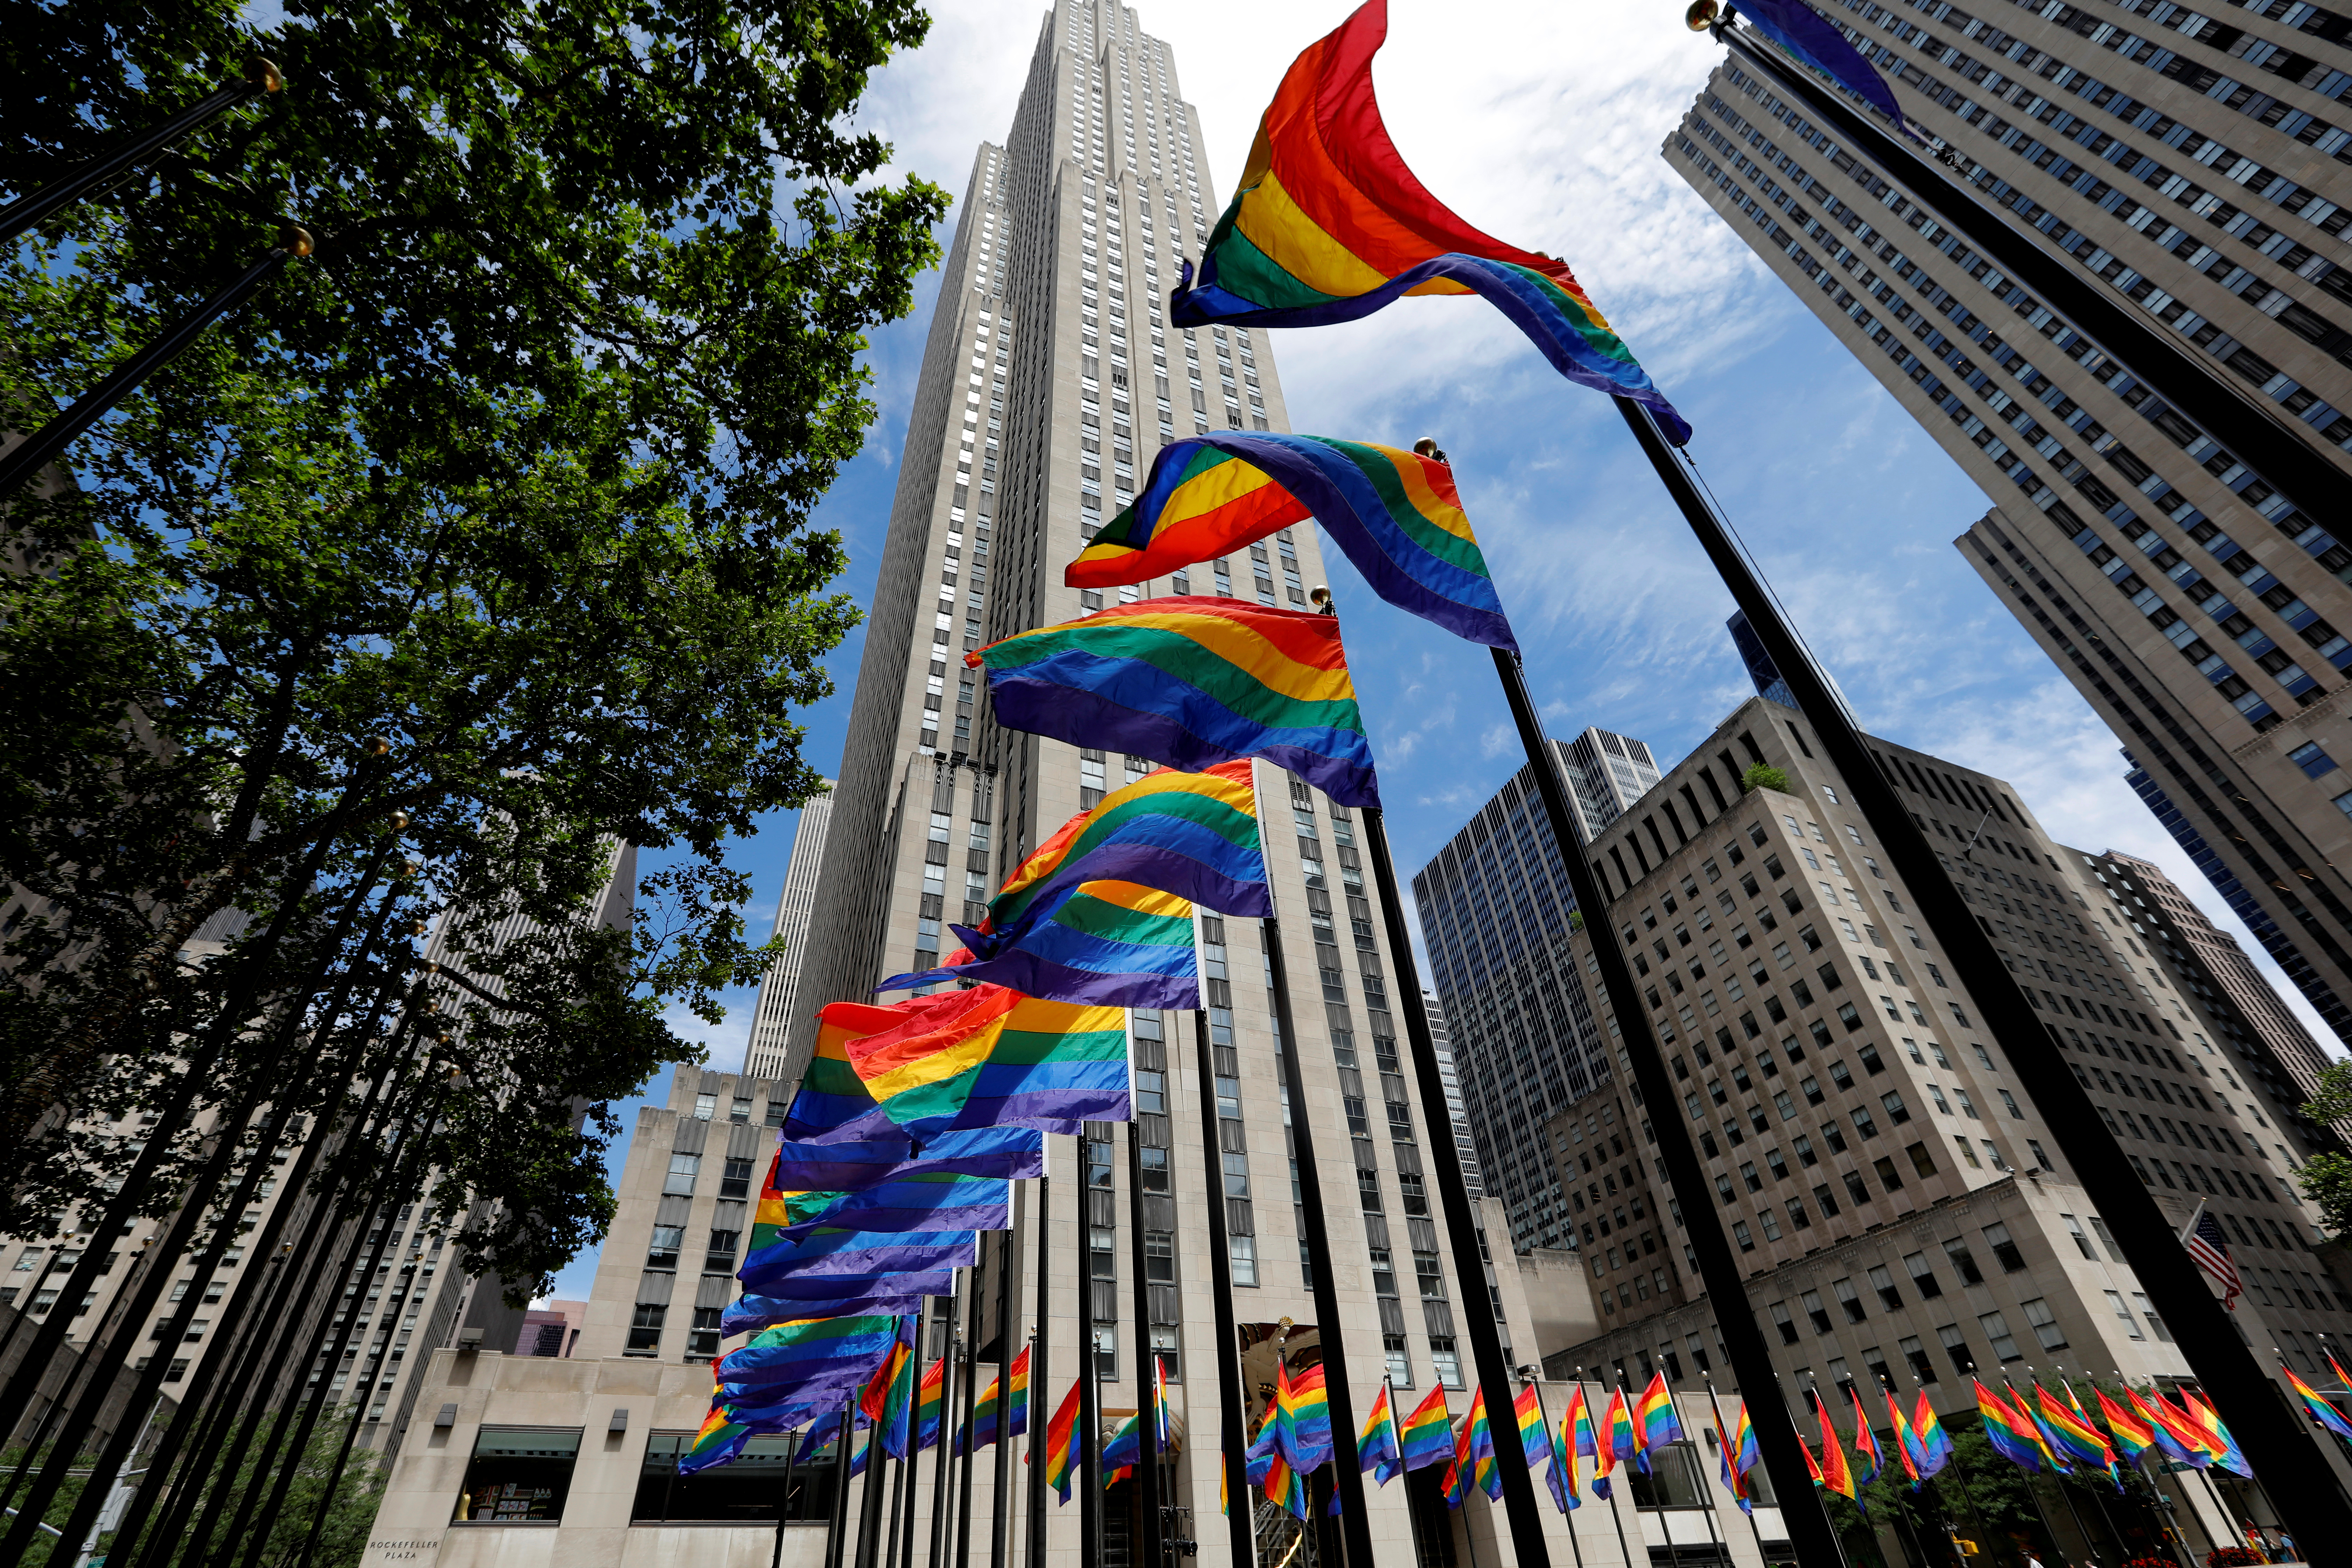 Rainbow flags fly at Rockefeller Center in midtown Manhattan in support of the LGBT community, prior to the 51st anniversary of the Stonewall Uprising, in New York City, New York, U.S., June 26, 2020. REUTERS/Mike Segar